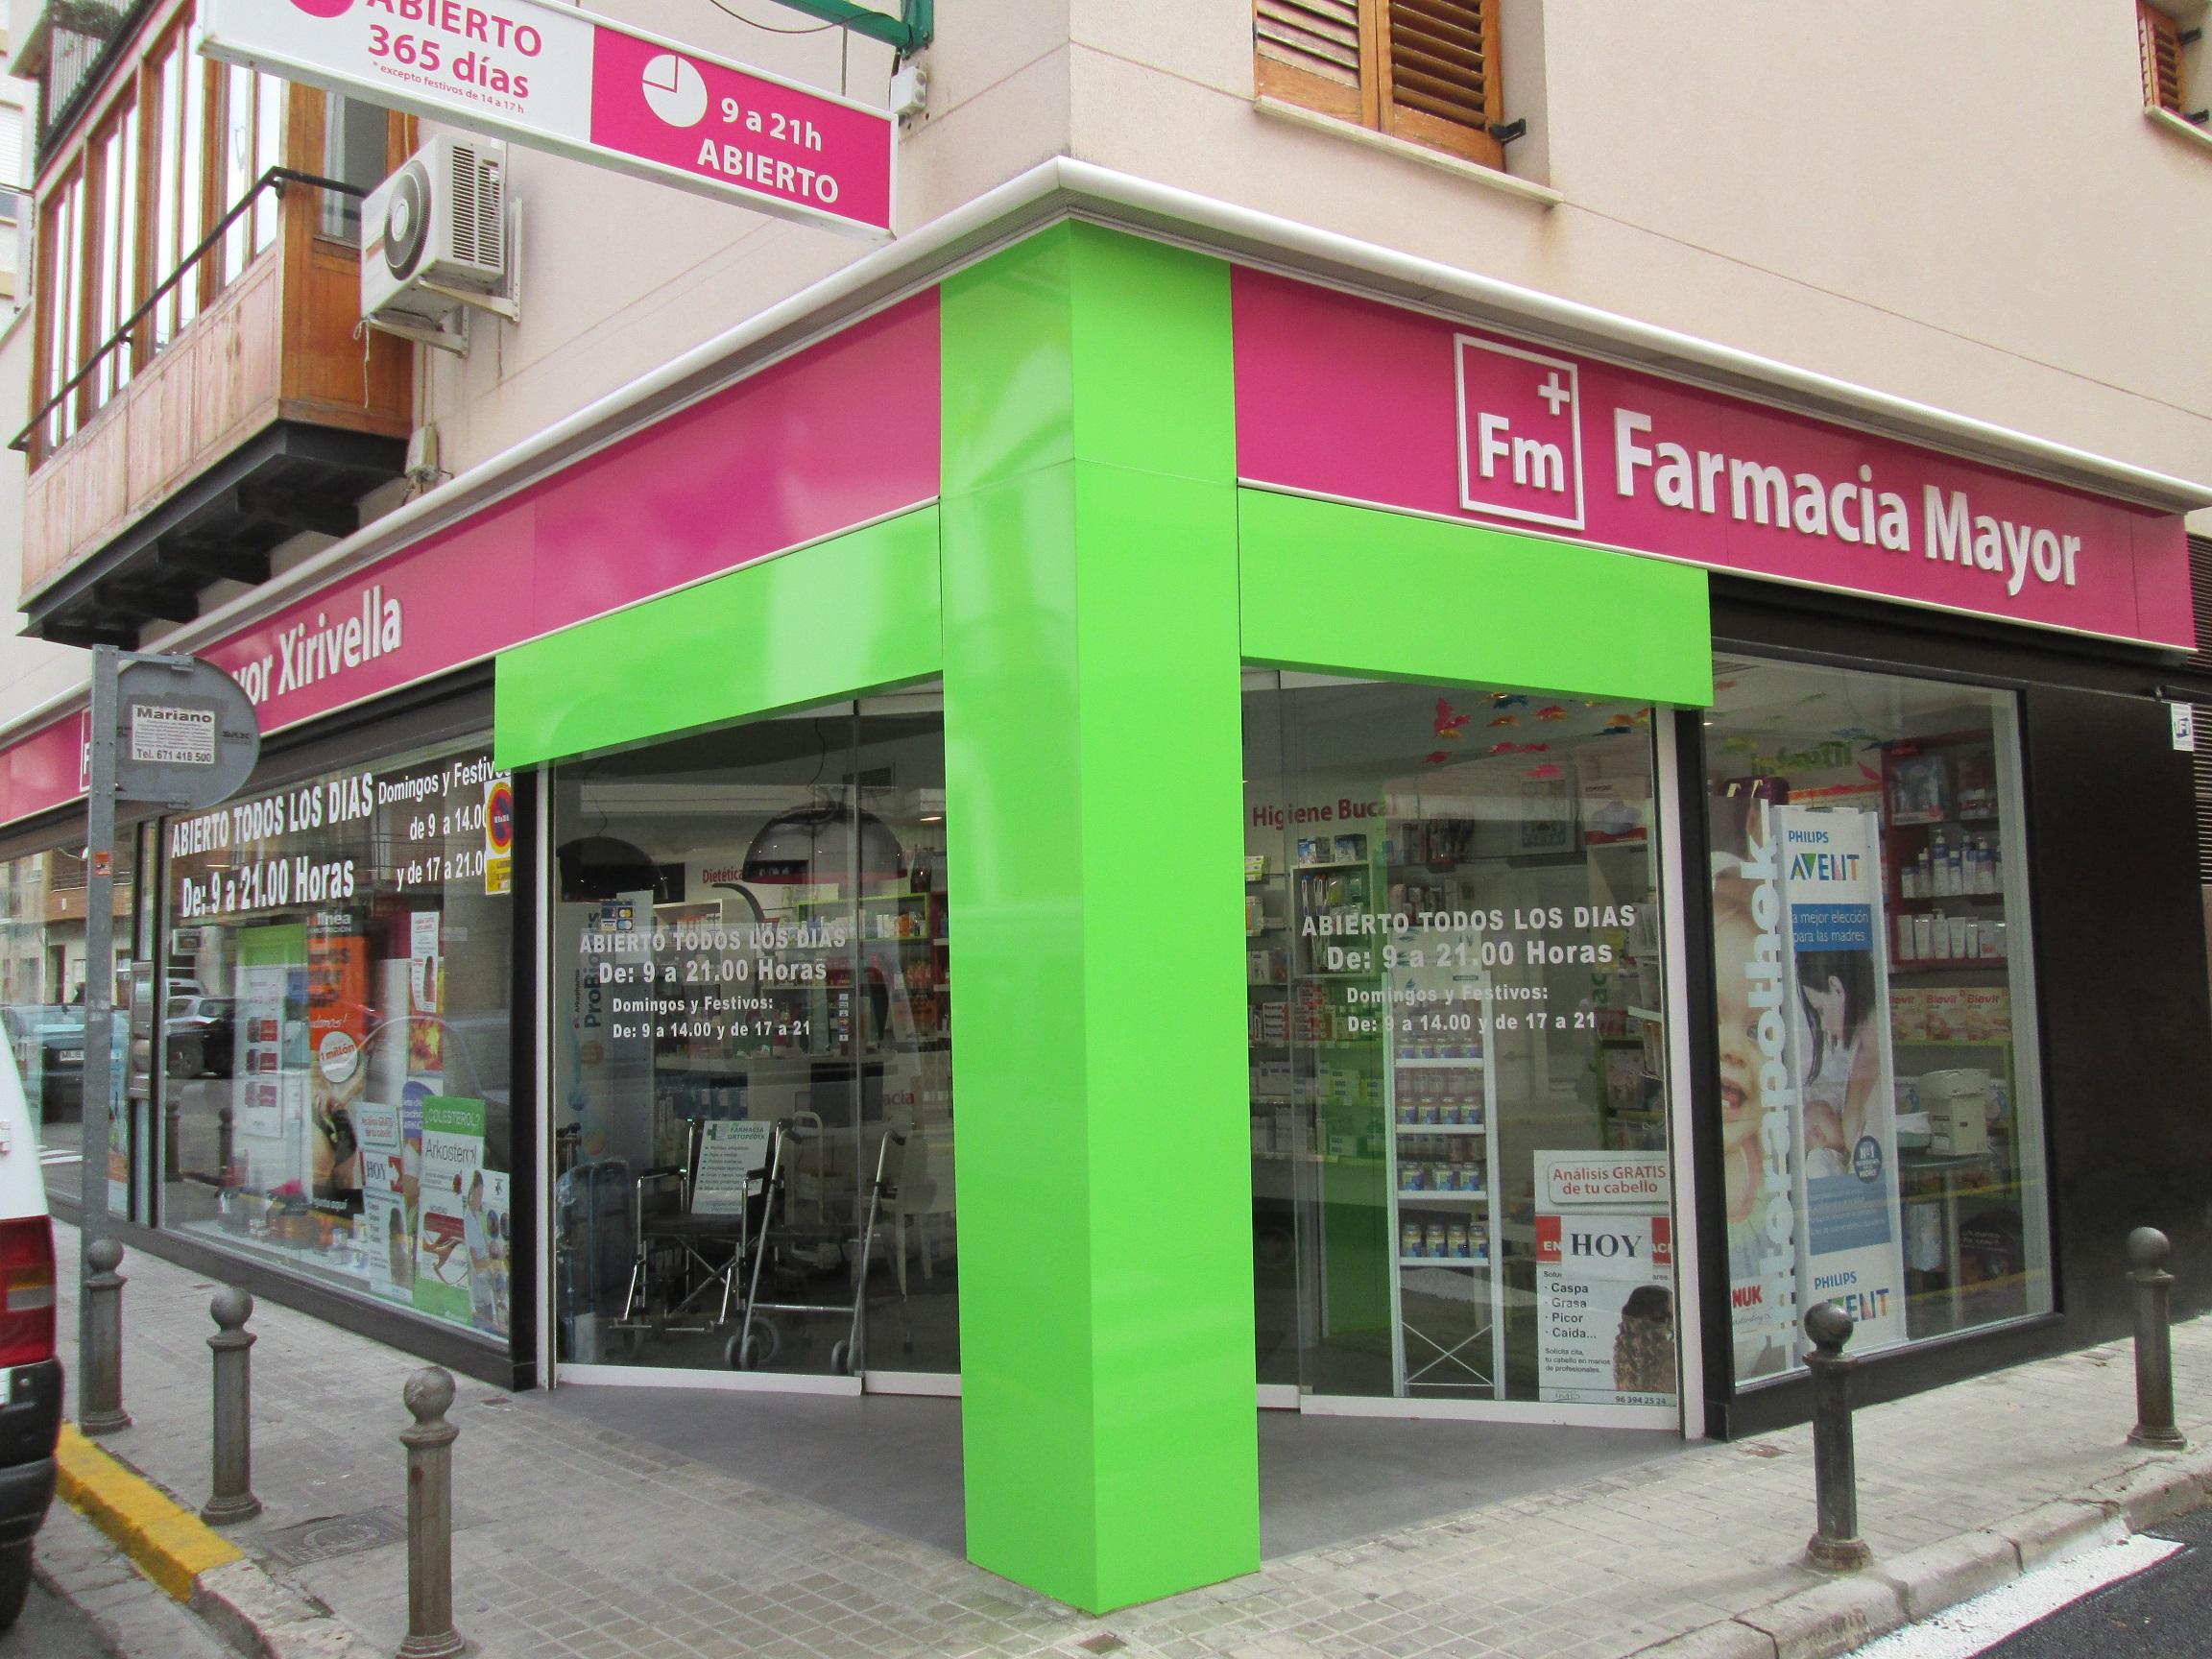 Farmacia Mayor